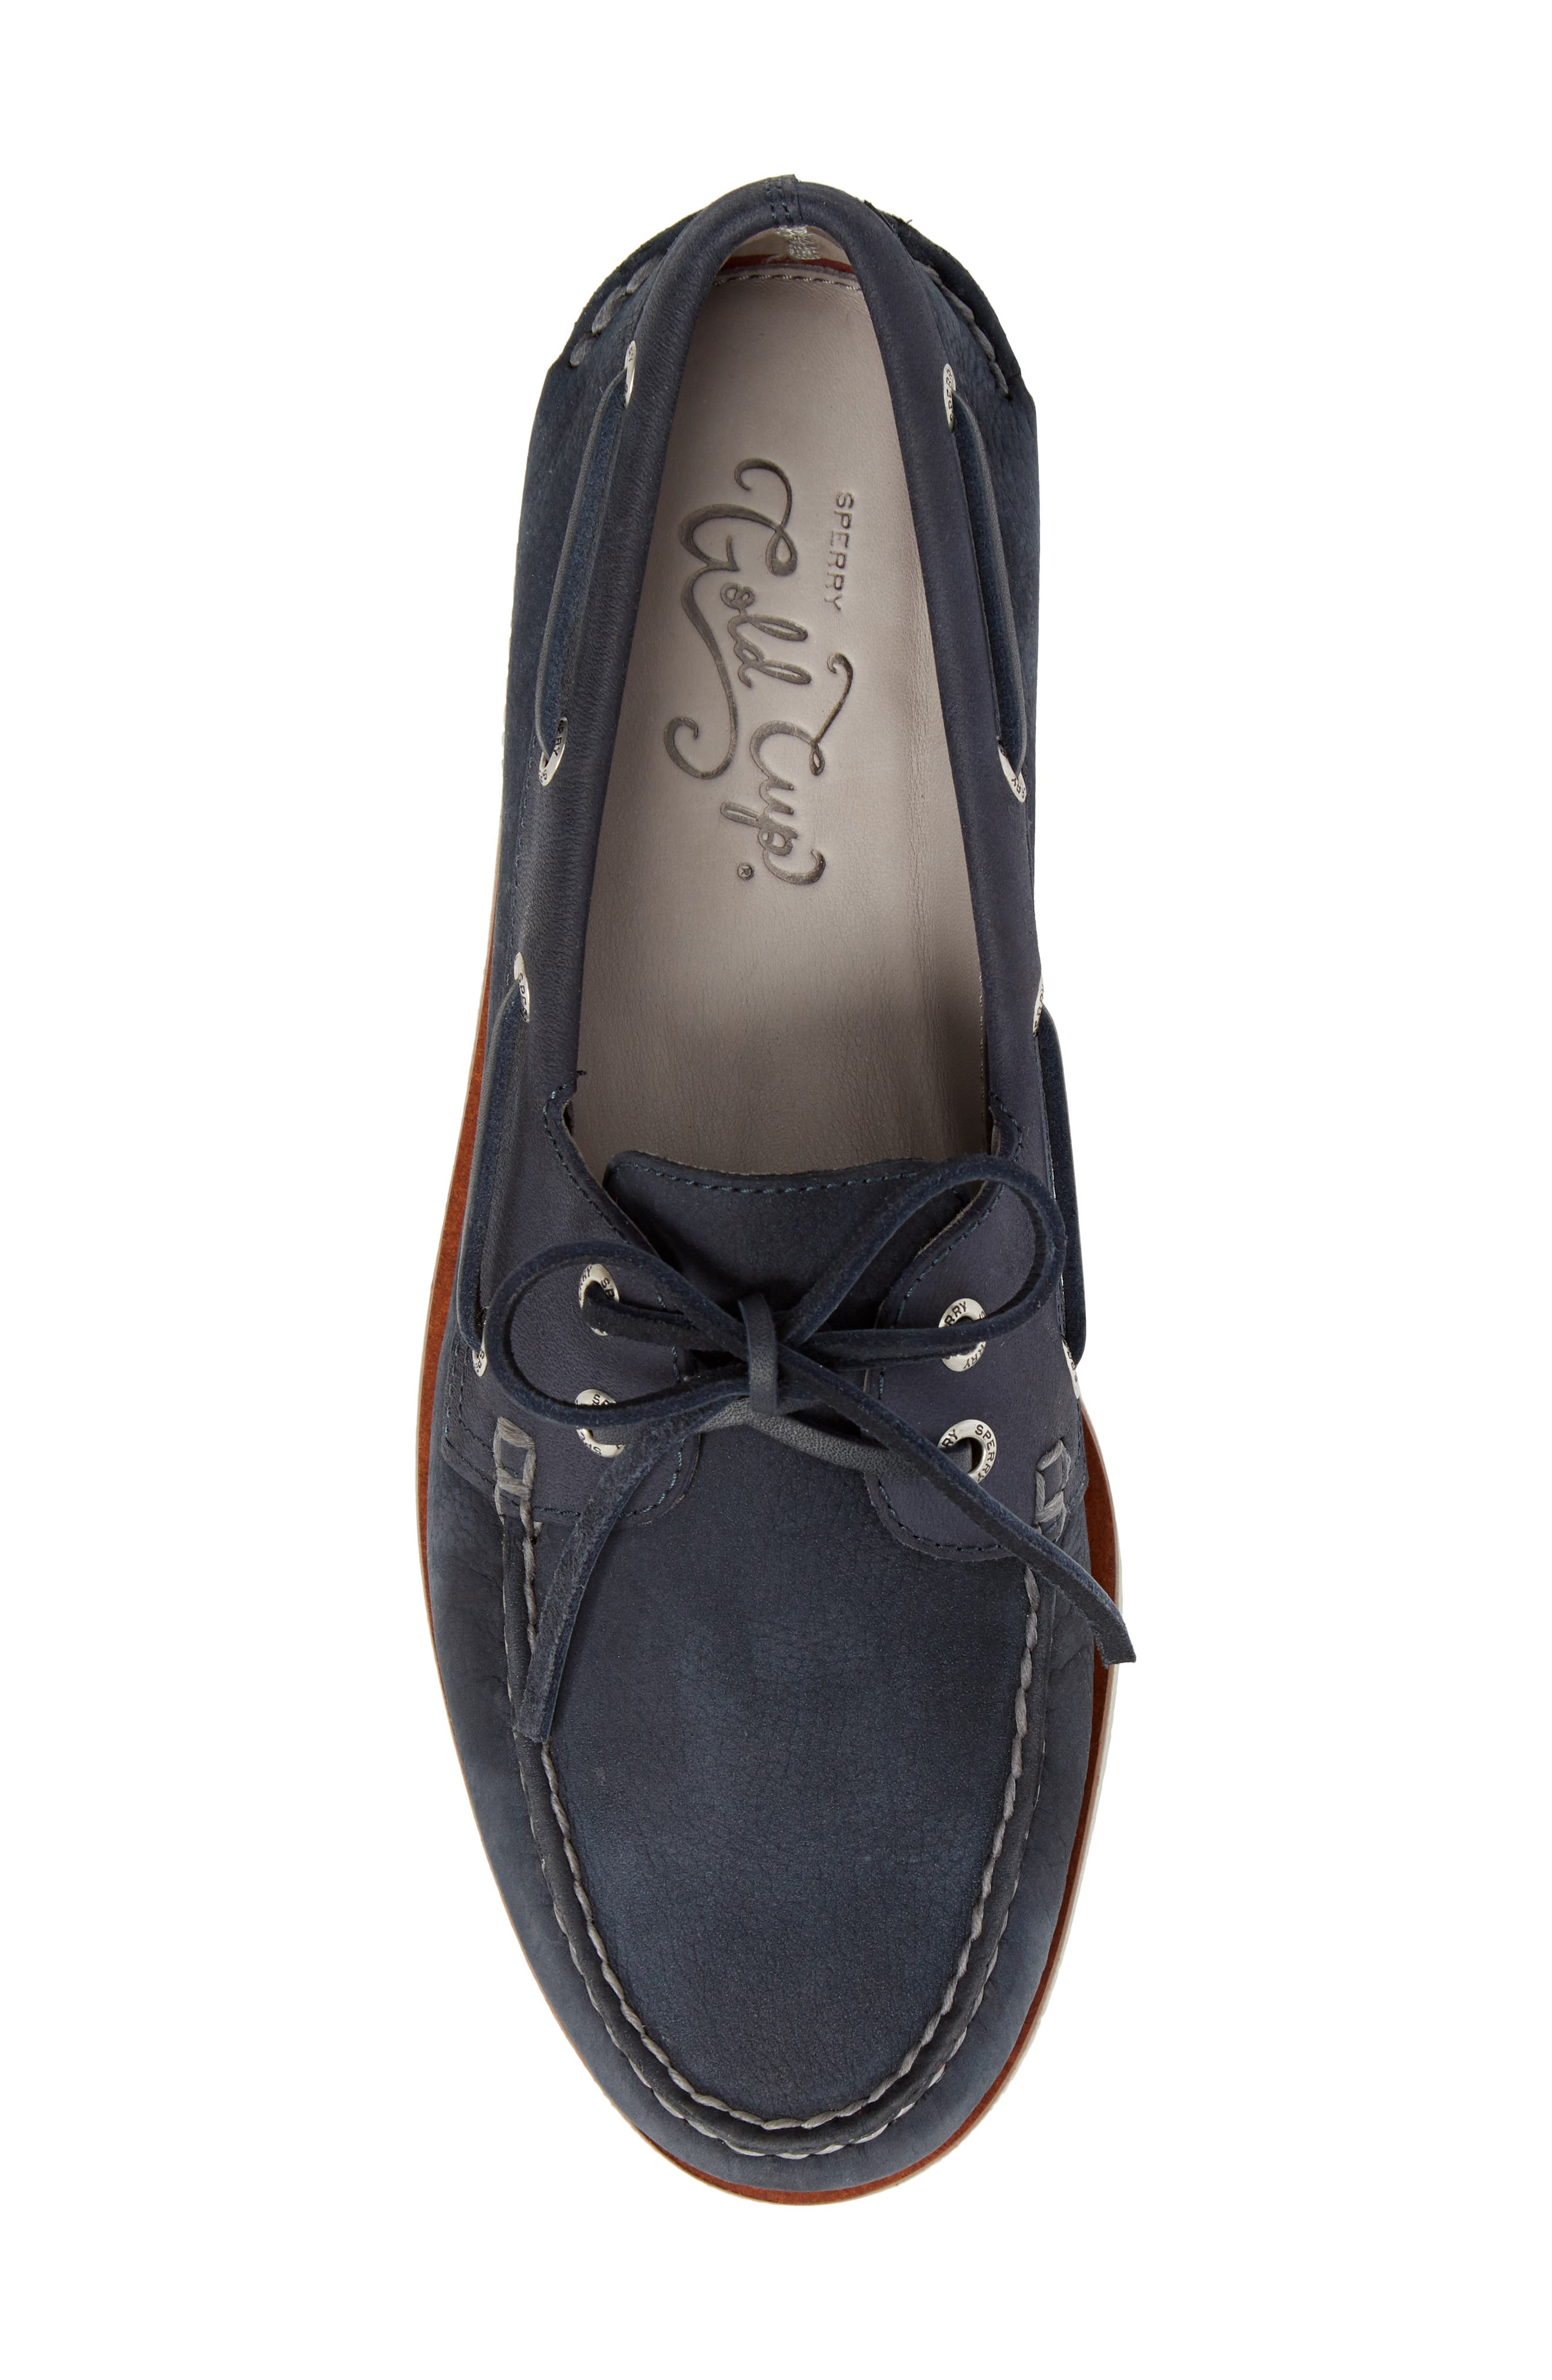 'Gold Cup - Authentic Original' Boat Shoe,                             Alternate thumbnail 5, color,                             BLUE/ NAVY LEATHER